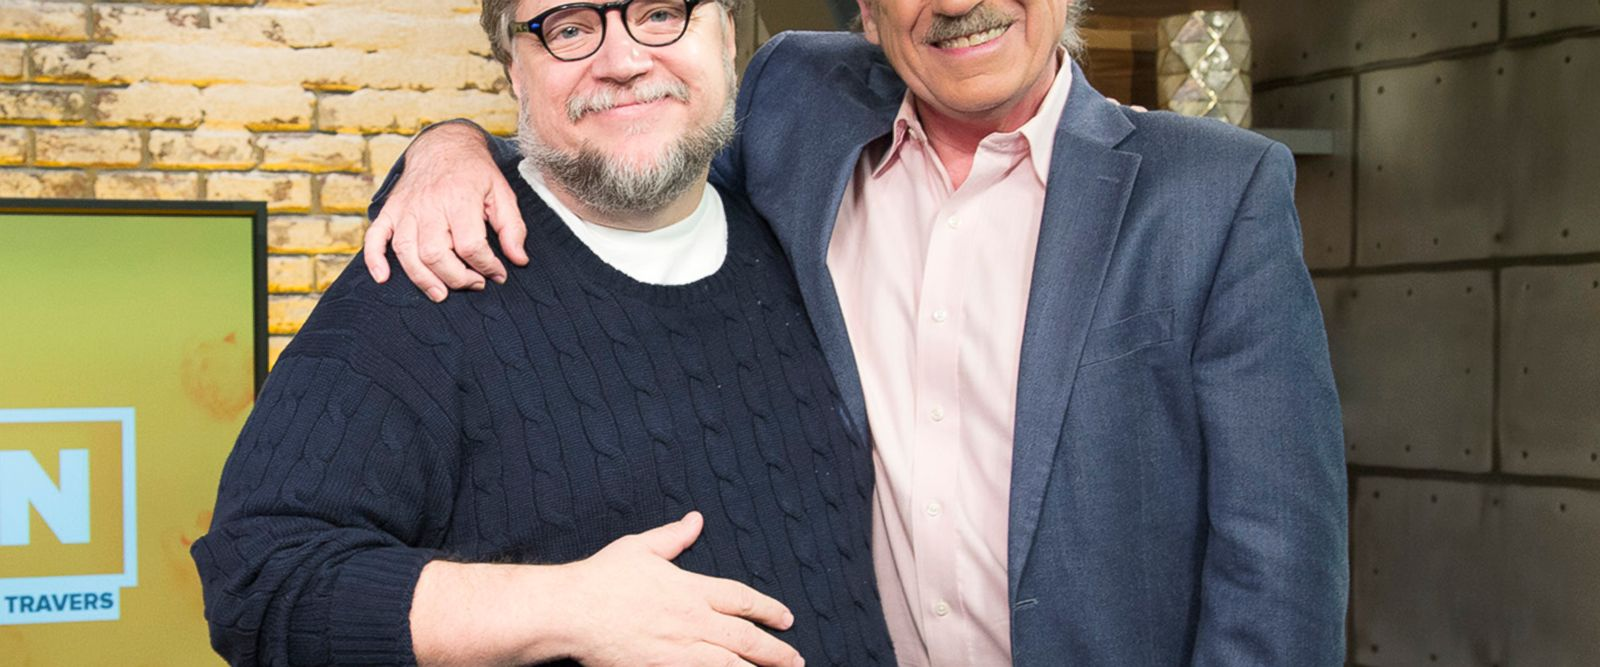 'VIDEO: Director Guillermo del Toro talks the making of 'The Shape of Water'' from the web at 'http://a.abcnews.com/images/Entertainment/171213_vod_orig_popc_deltoro_12x5_1600.jpg'